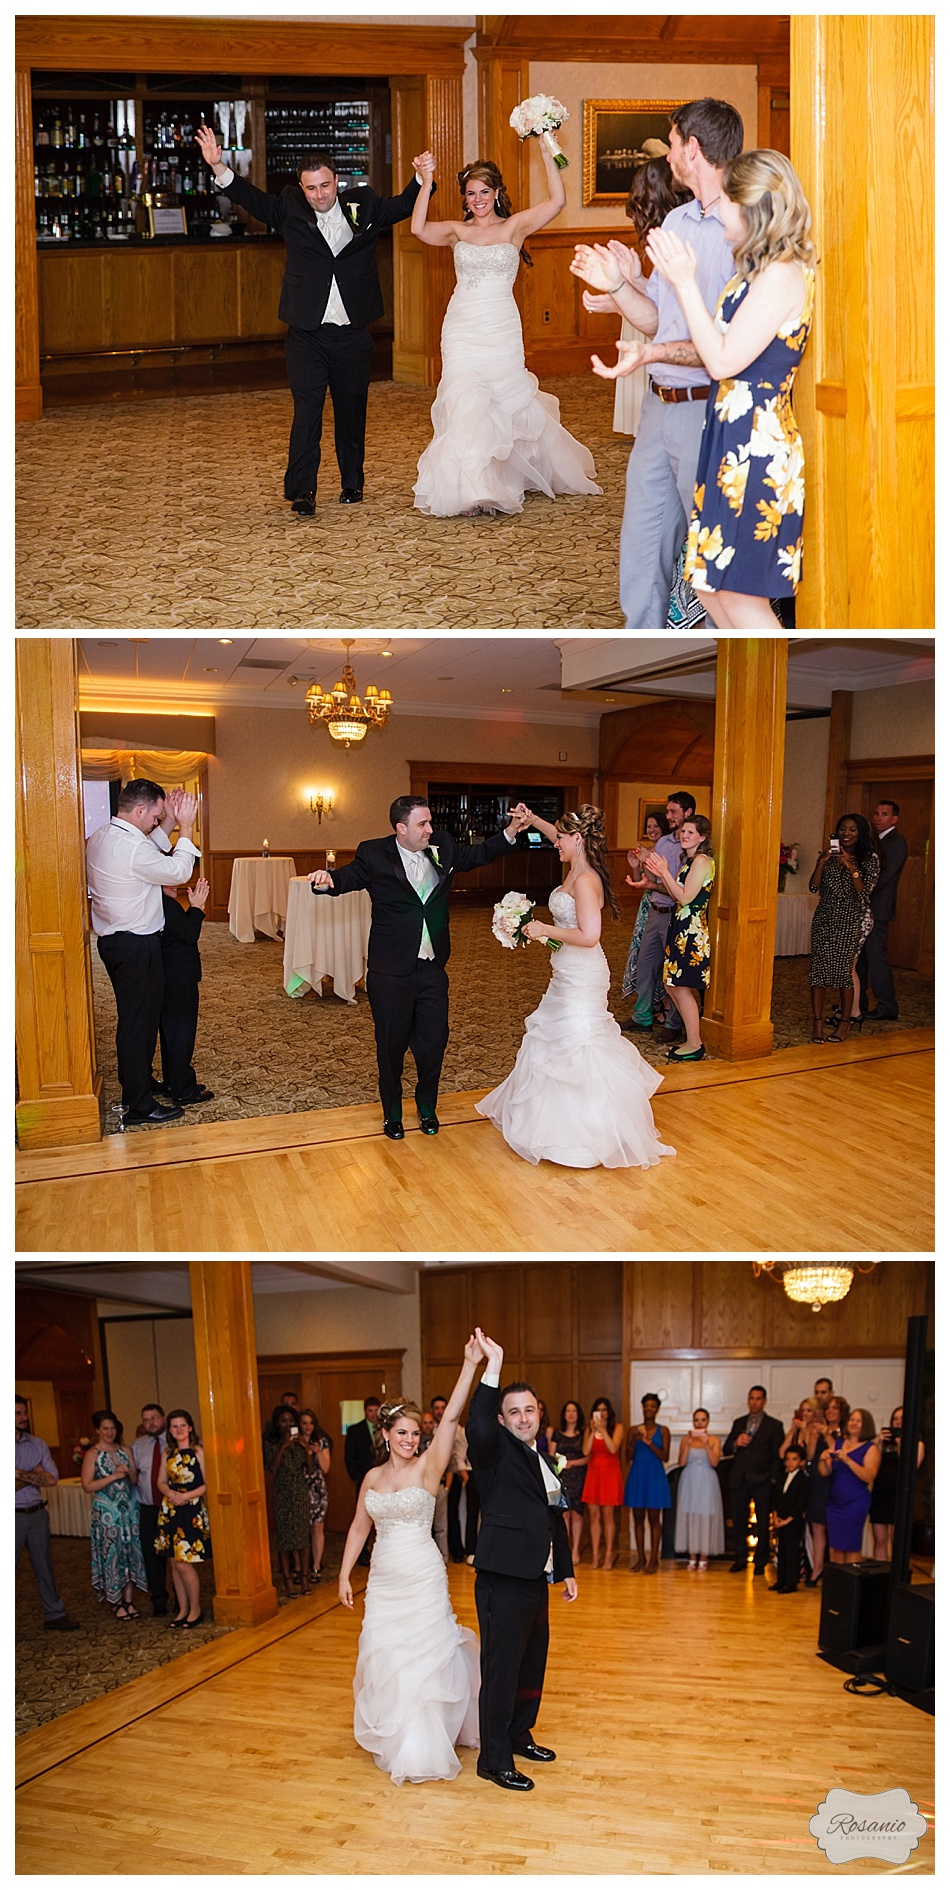 Rosanio Photography | Andover Country Club Wedding_0102.jpg